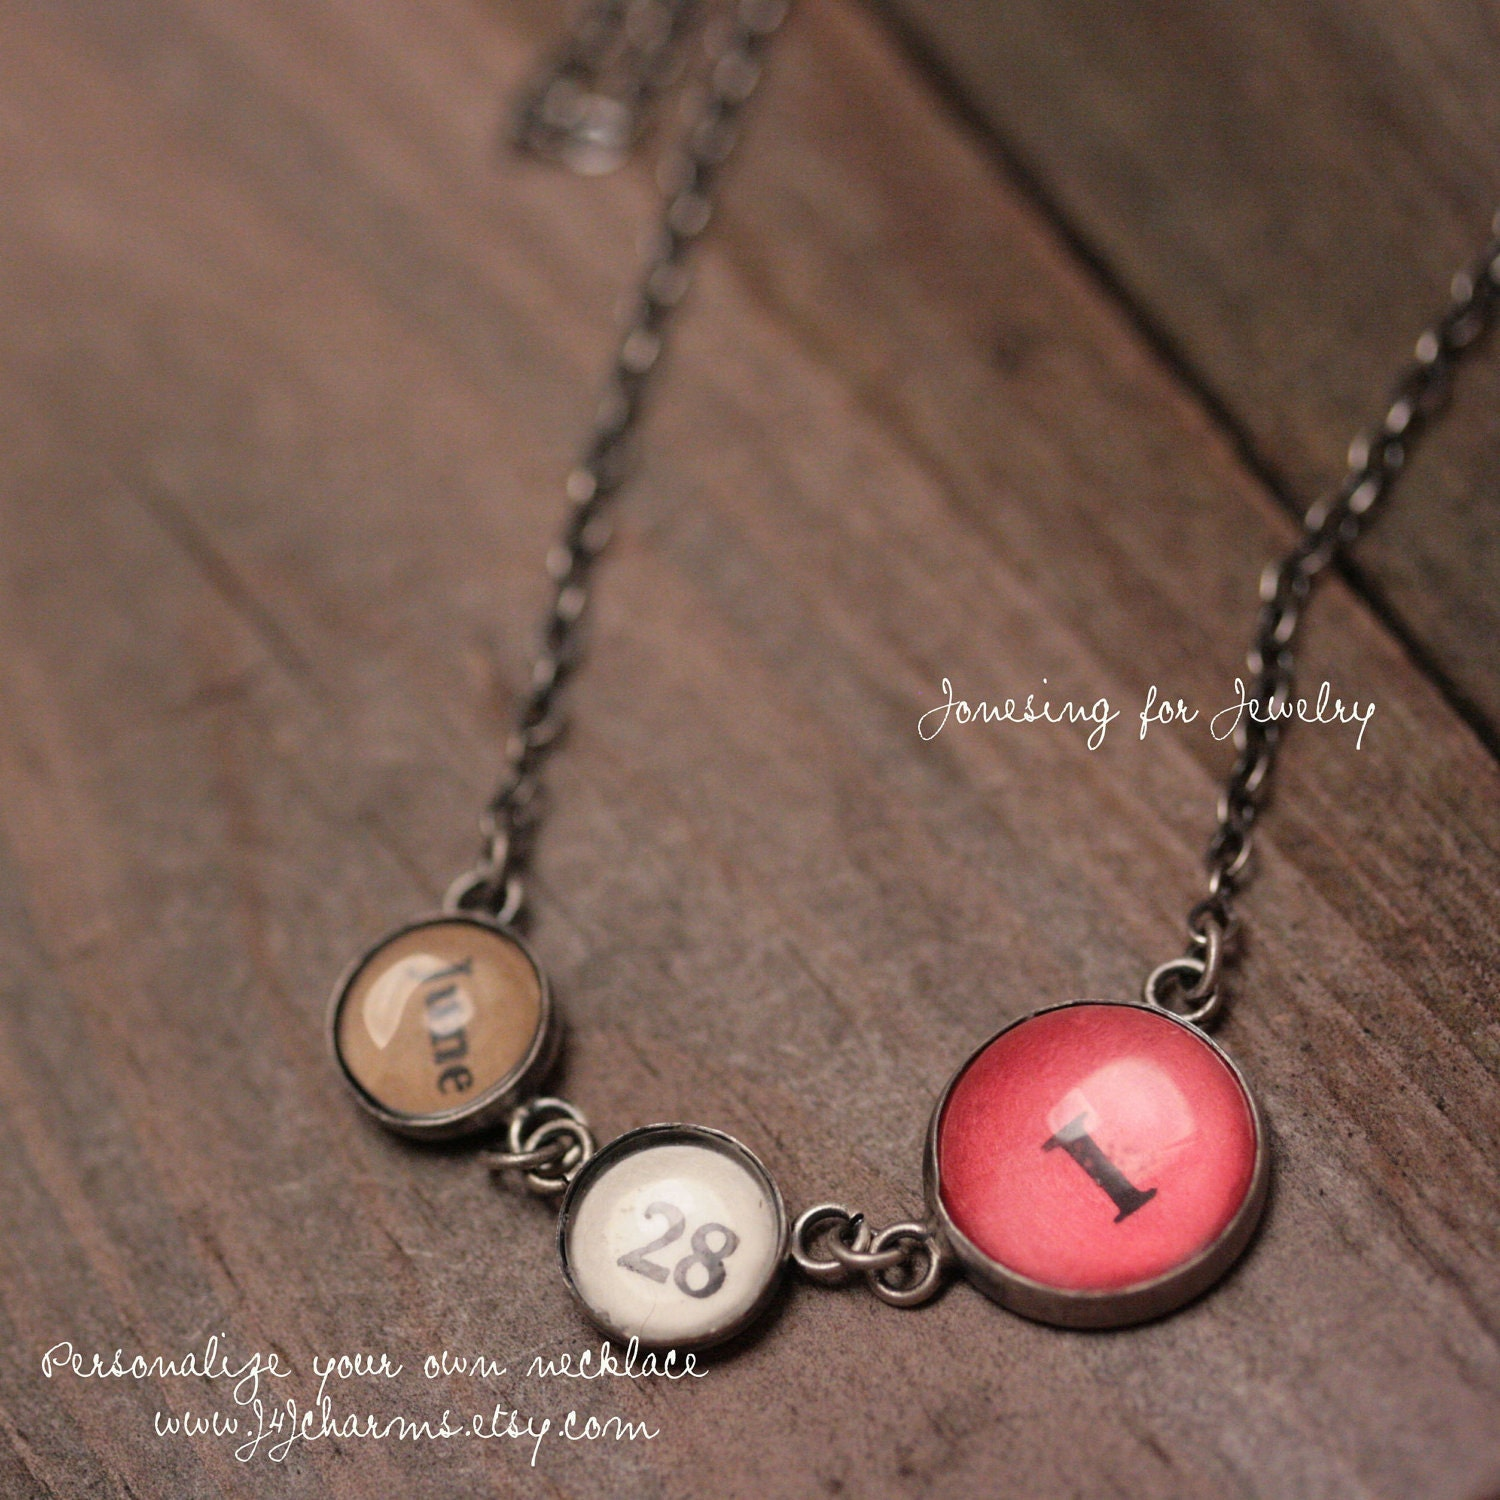 Mothers Personalized Charm Necklace - 1 Monogram, Dates, Linked, Without Beads